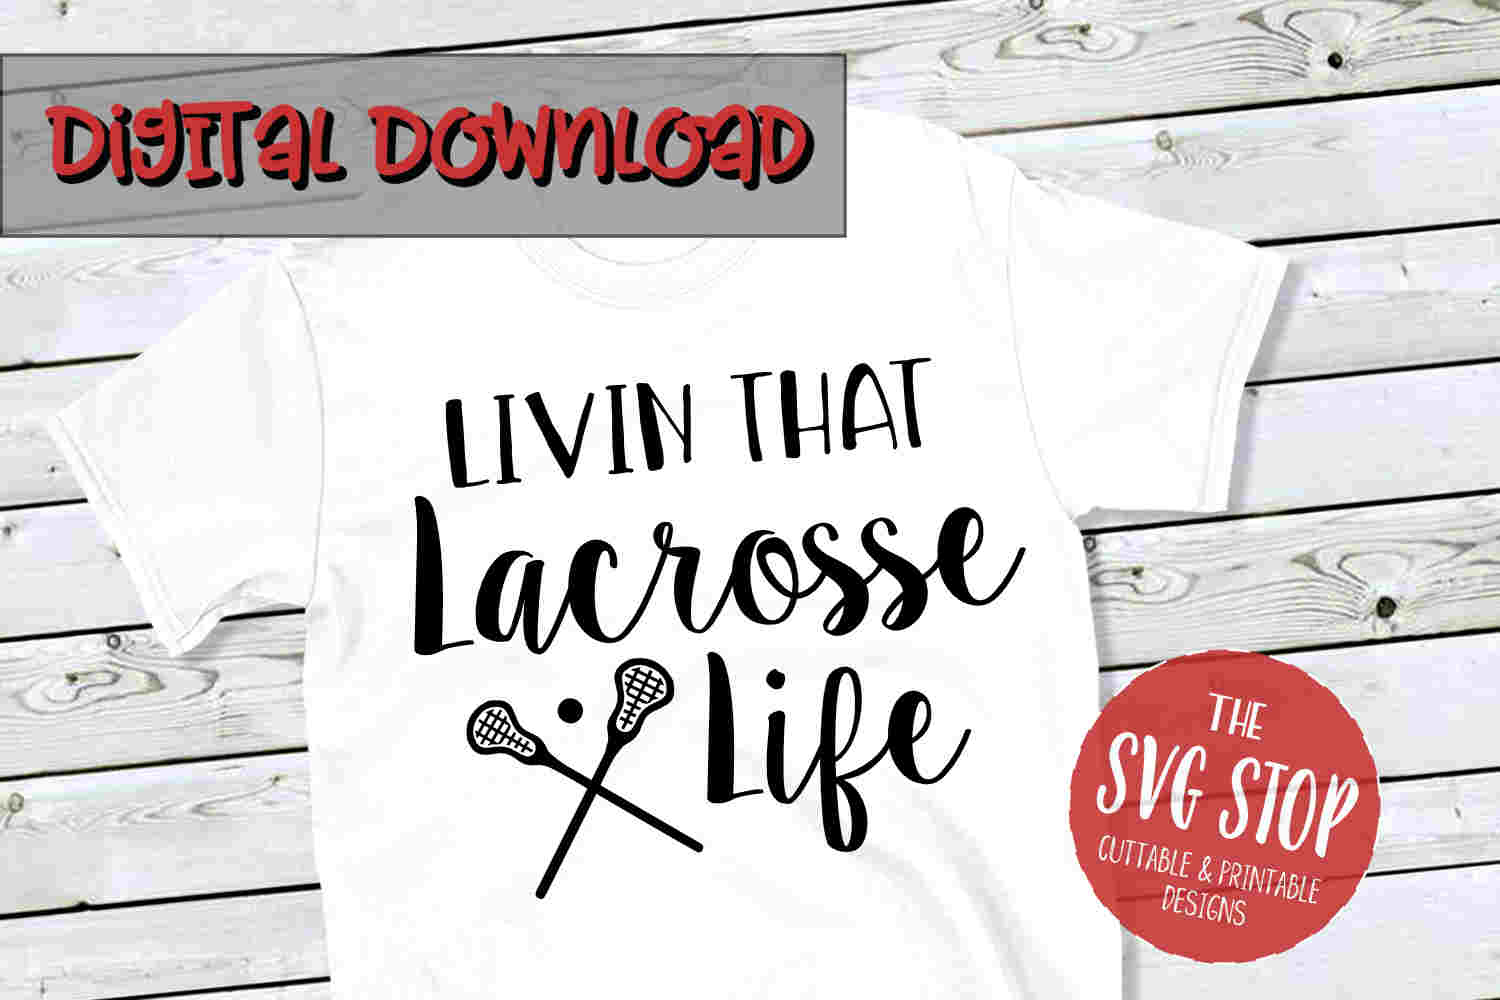 Lacrosse Life -SVG, PNG, DXF example image 1